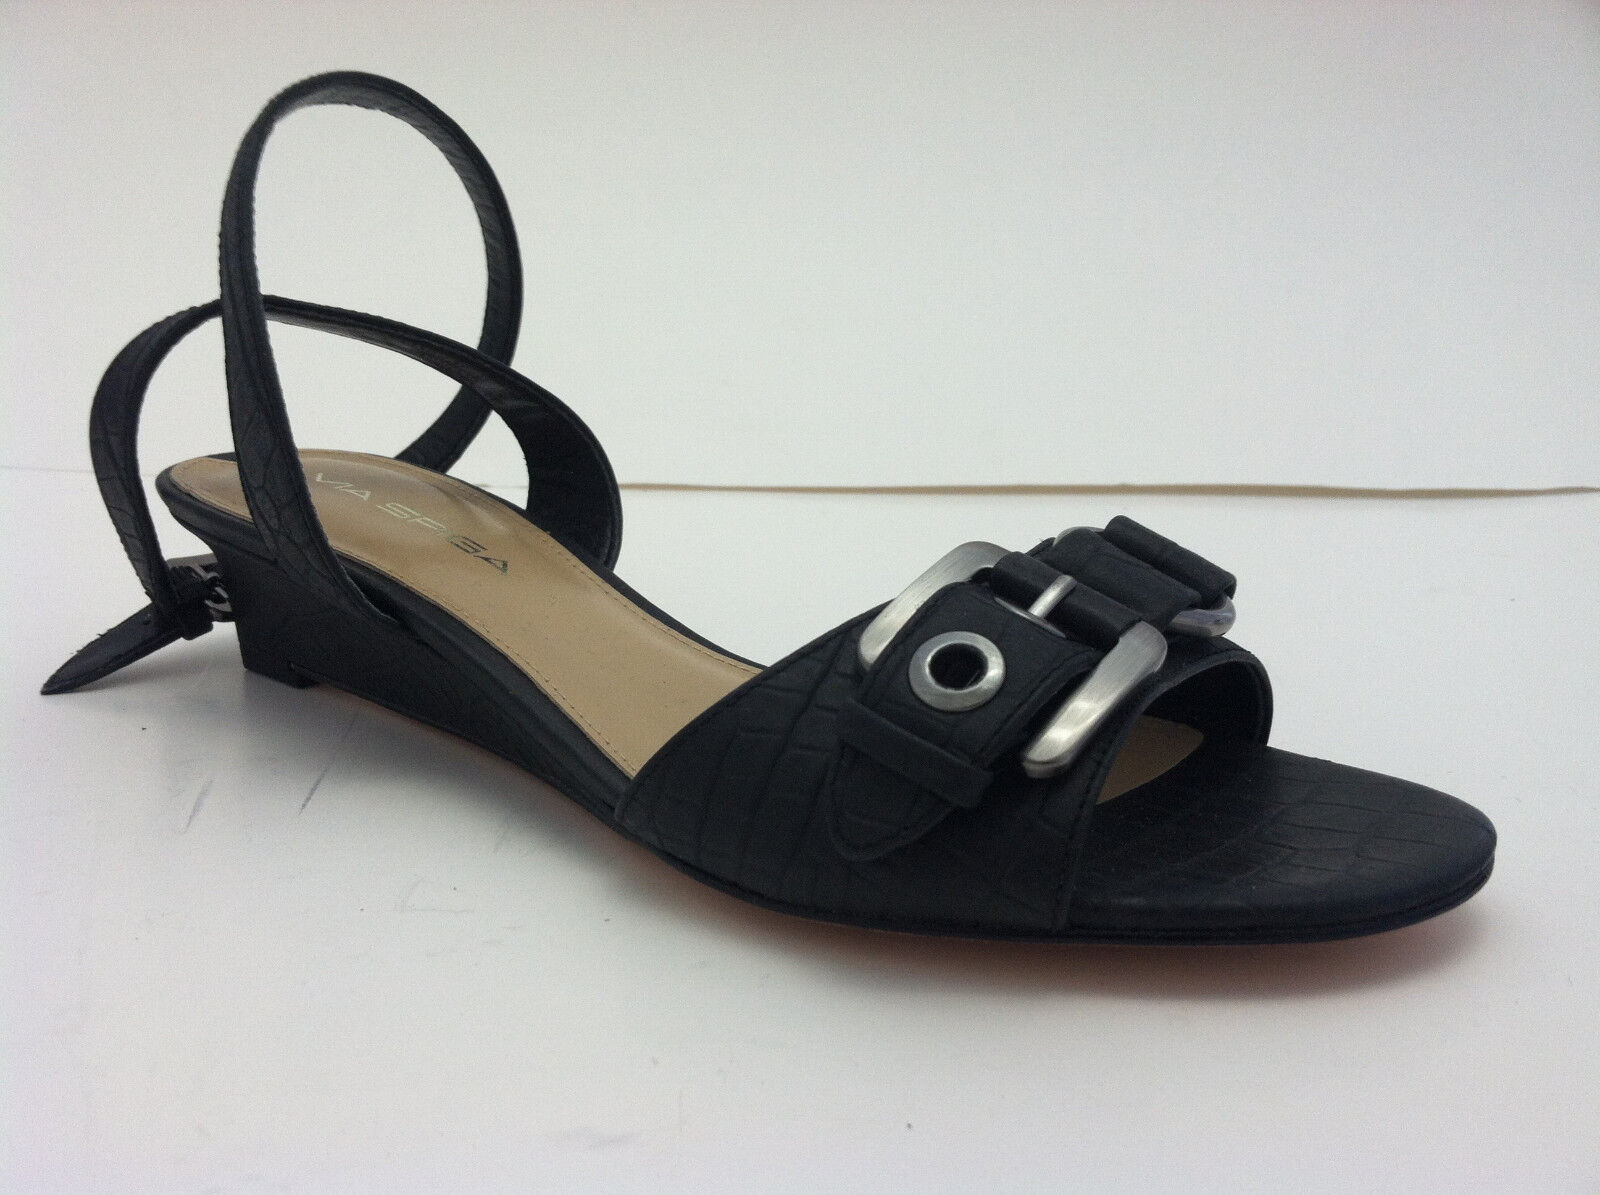 New Via Spiga womens black leather shoe sandal open toe buckle ankle strap sz 6M